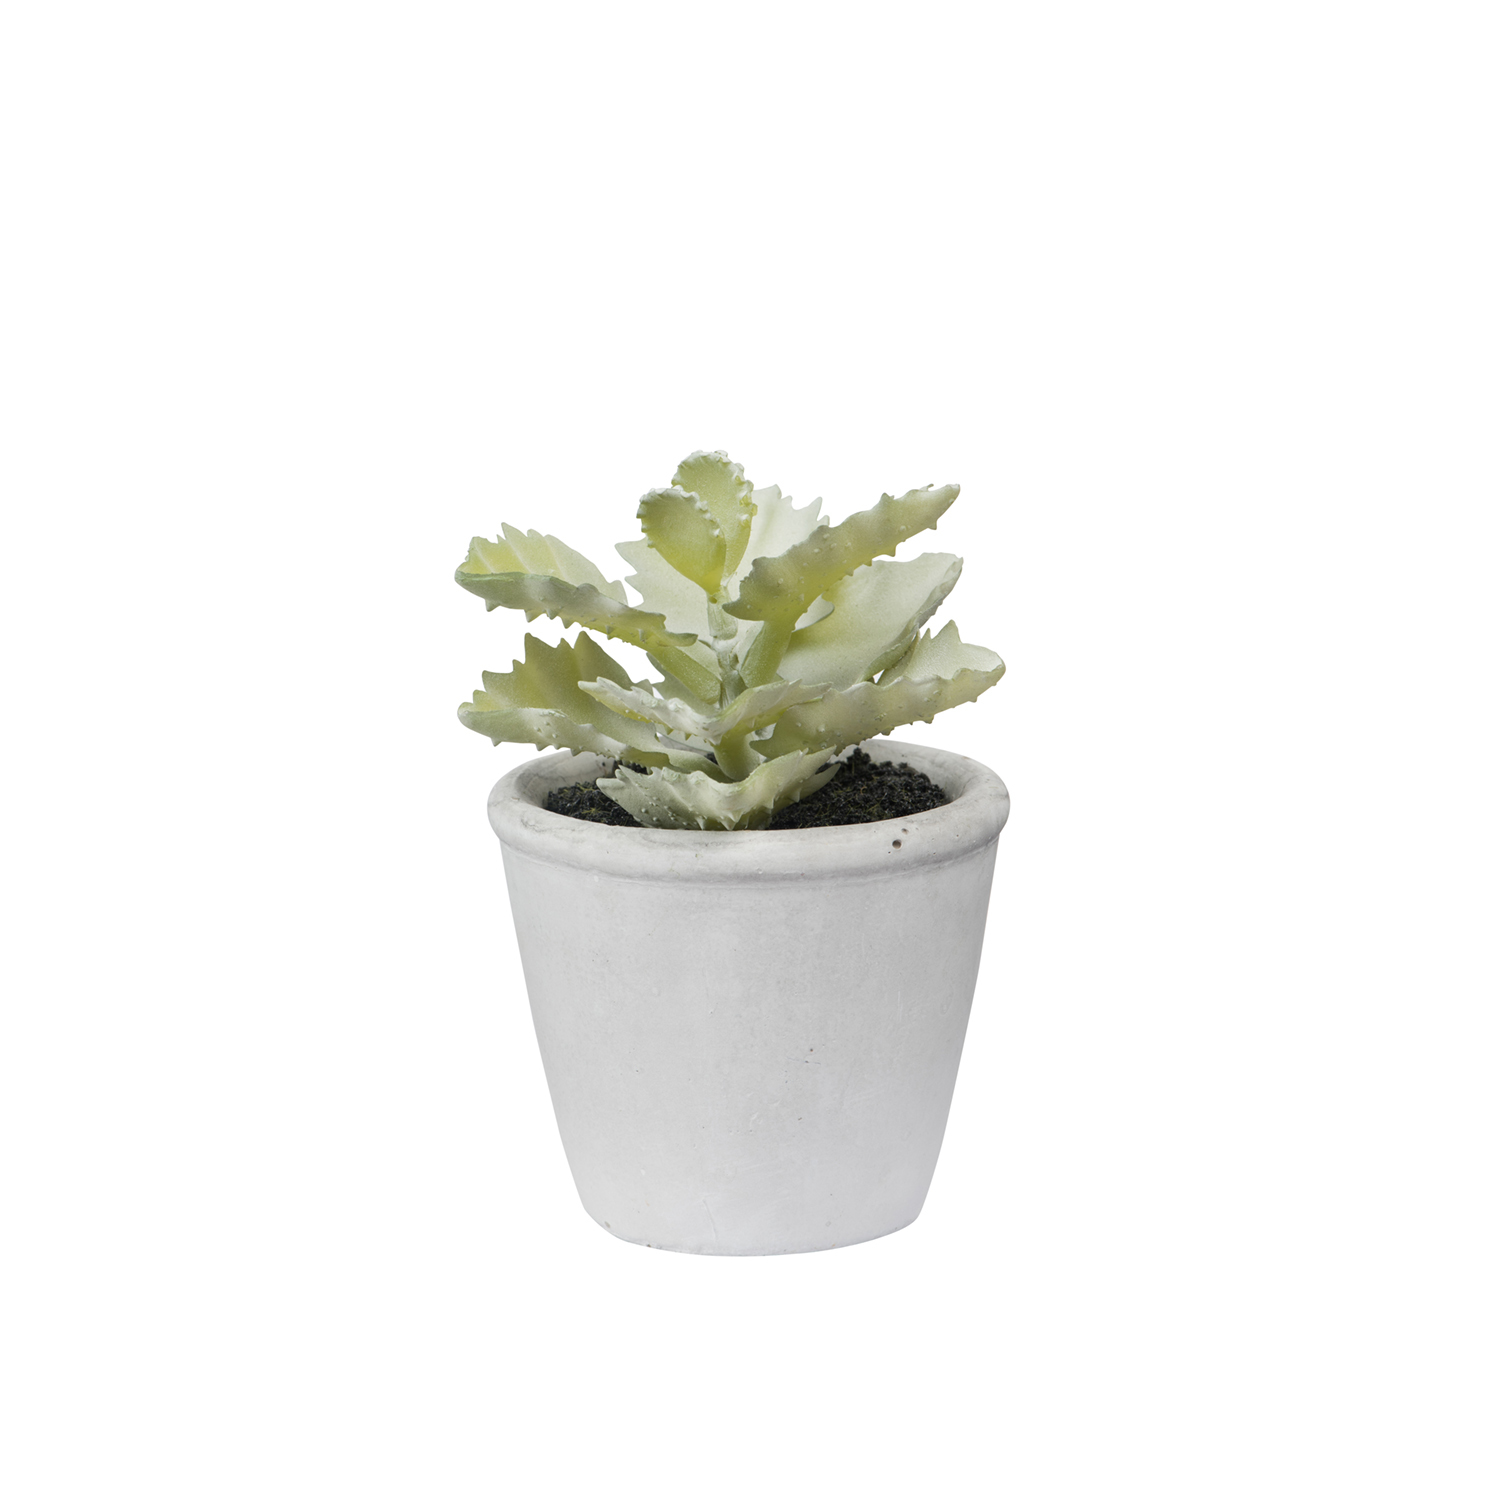 General Eclectic: Artificial Plant - Frilly Succulent image